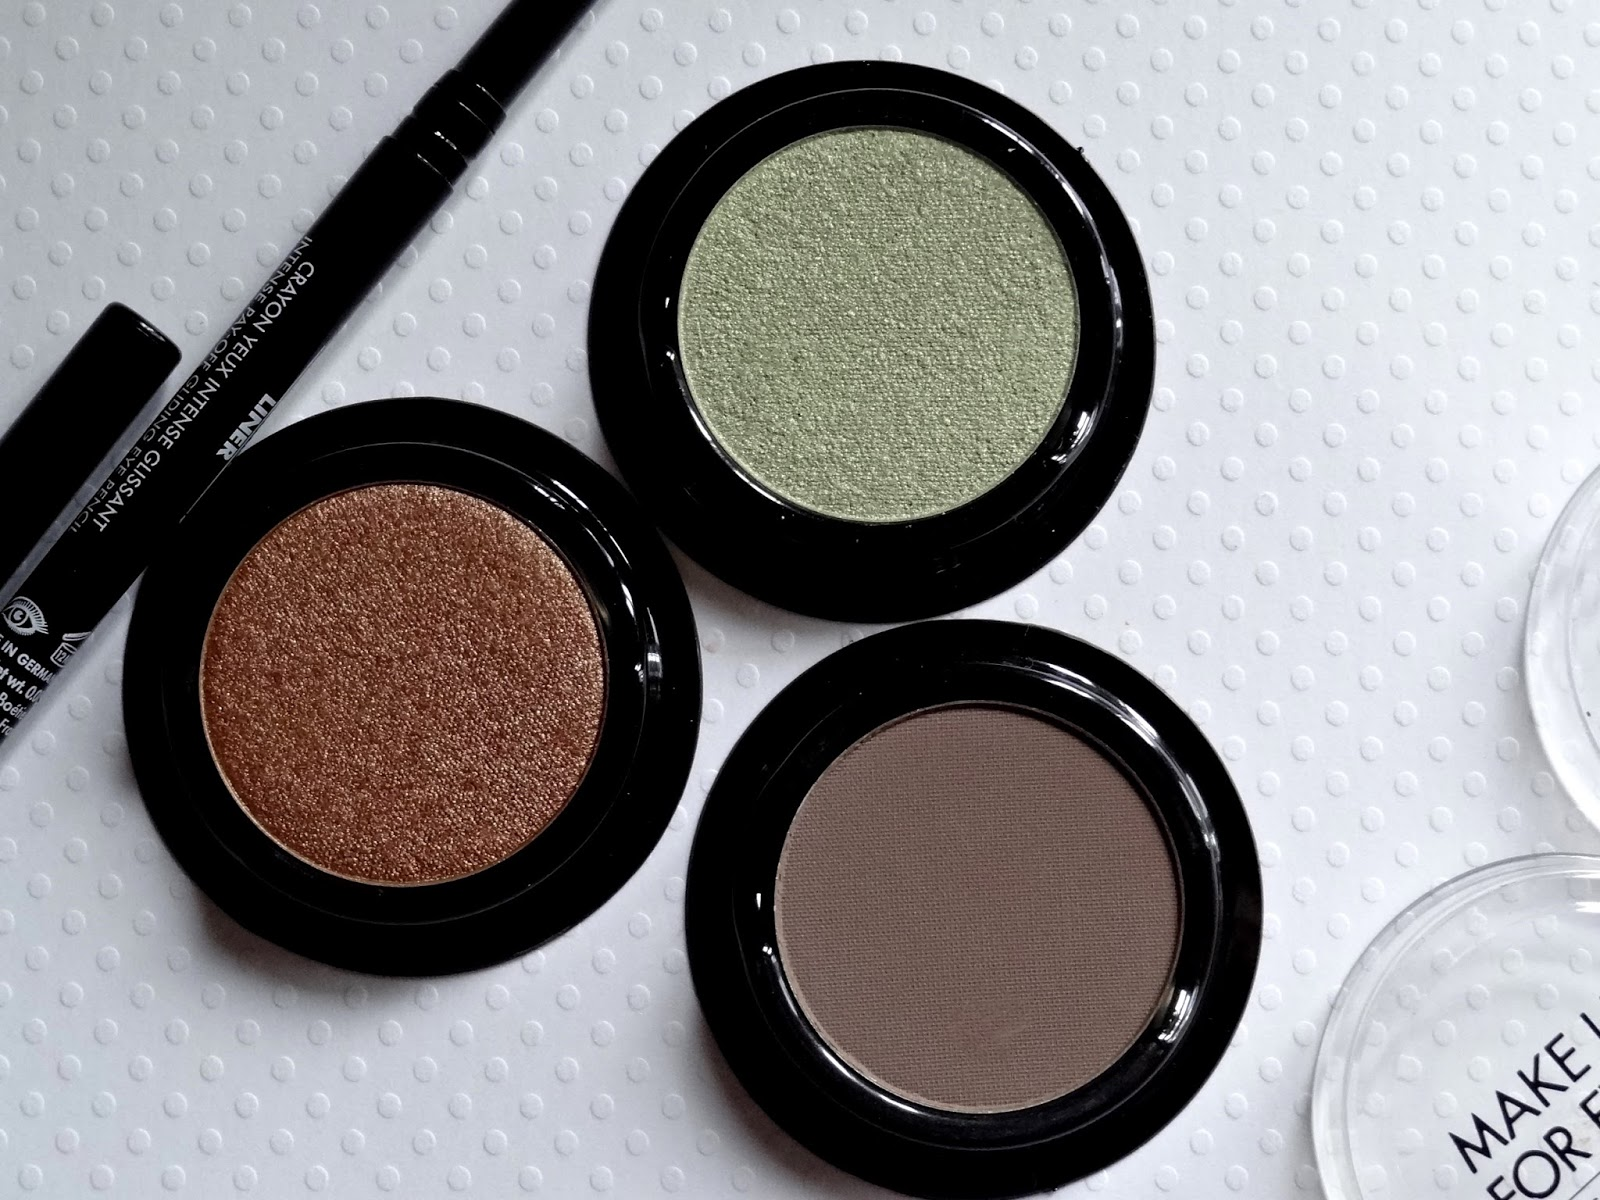 make up for ever artist eyeshadows in i662, m558, i330